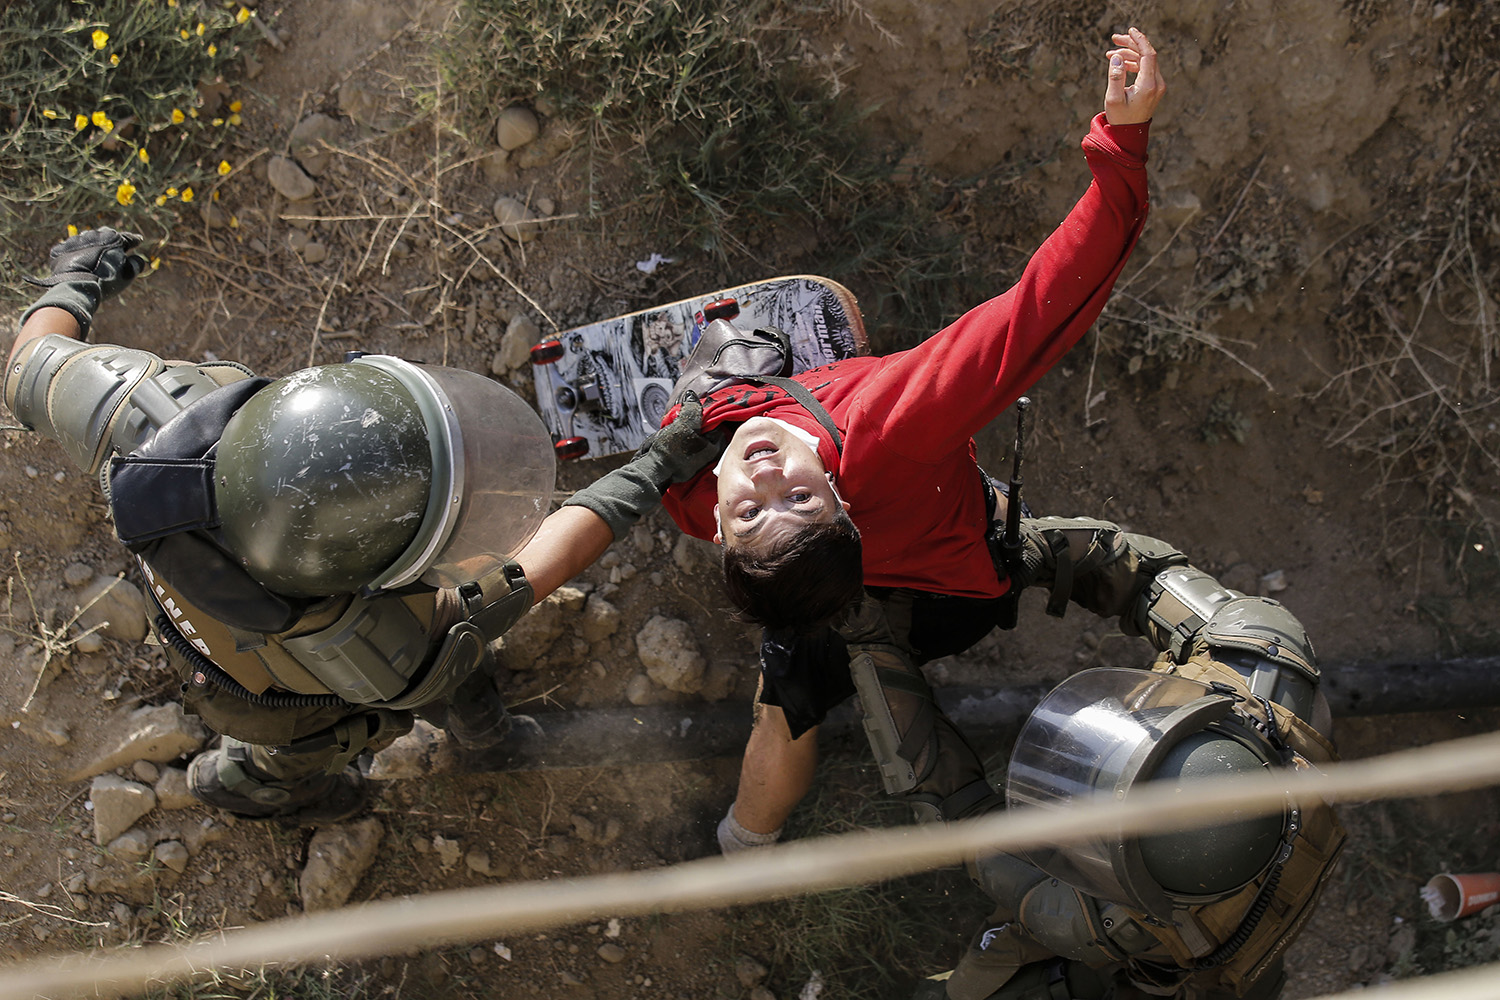 A demonstrator is detained by riot police during clashes that erupted in a protest against Chile's President Sebastian Pinera in the country's seaside resort of Vina del Mar on on Feb. 24. JAVIER TORRES/AFP via Getty Images